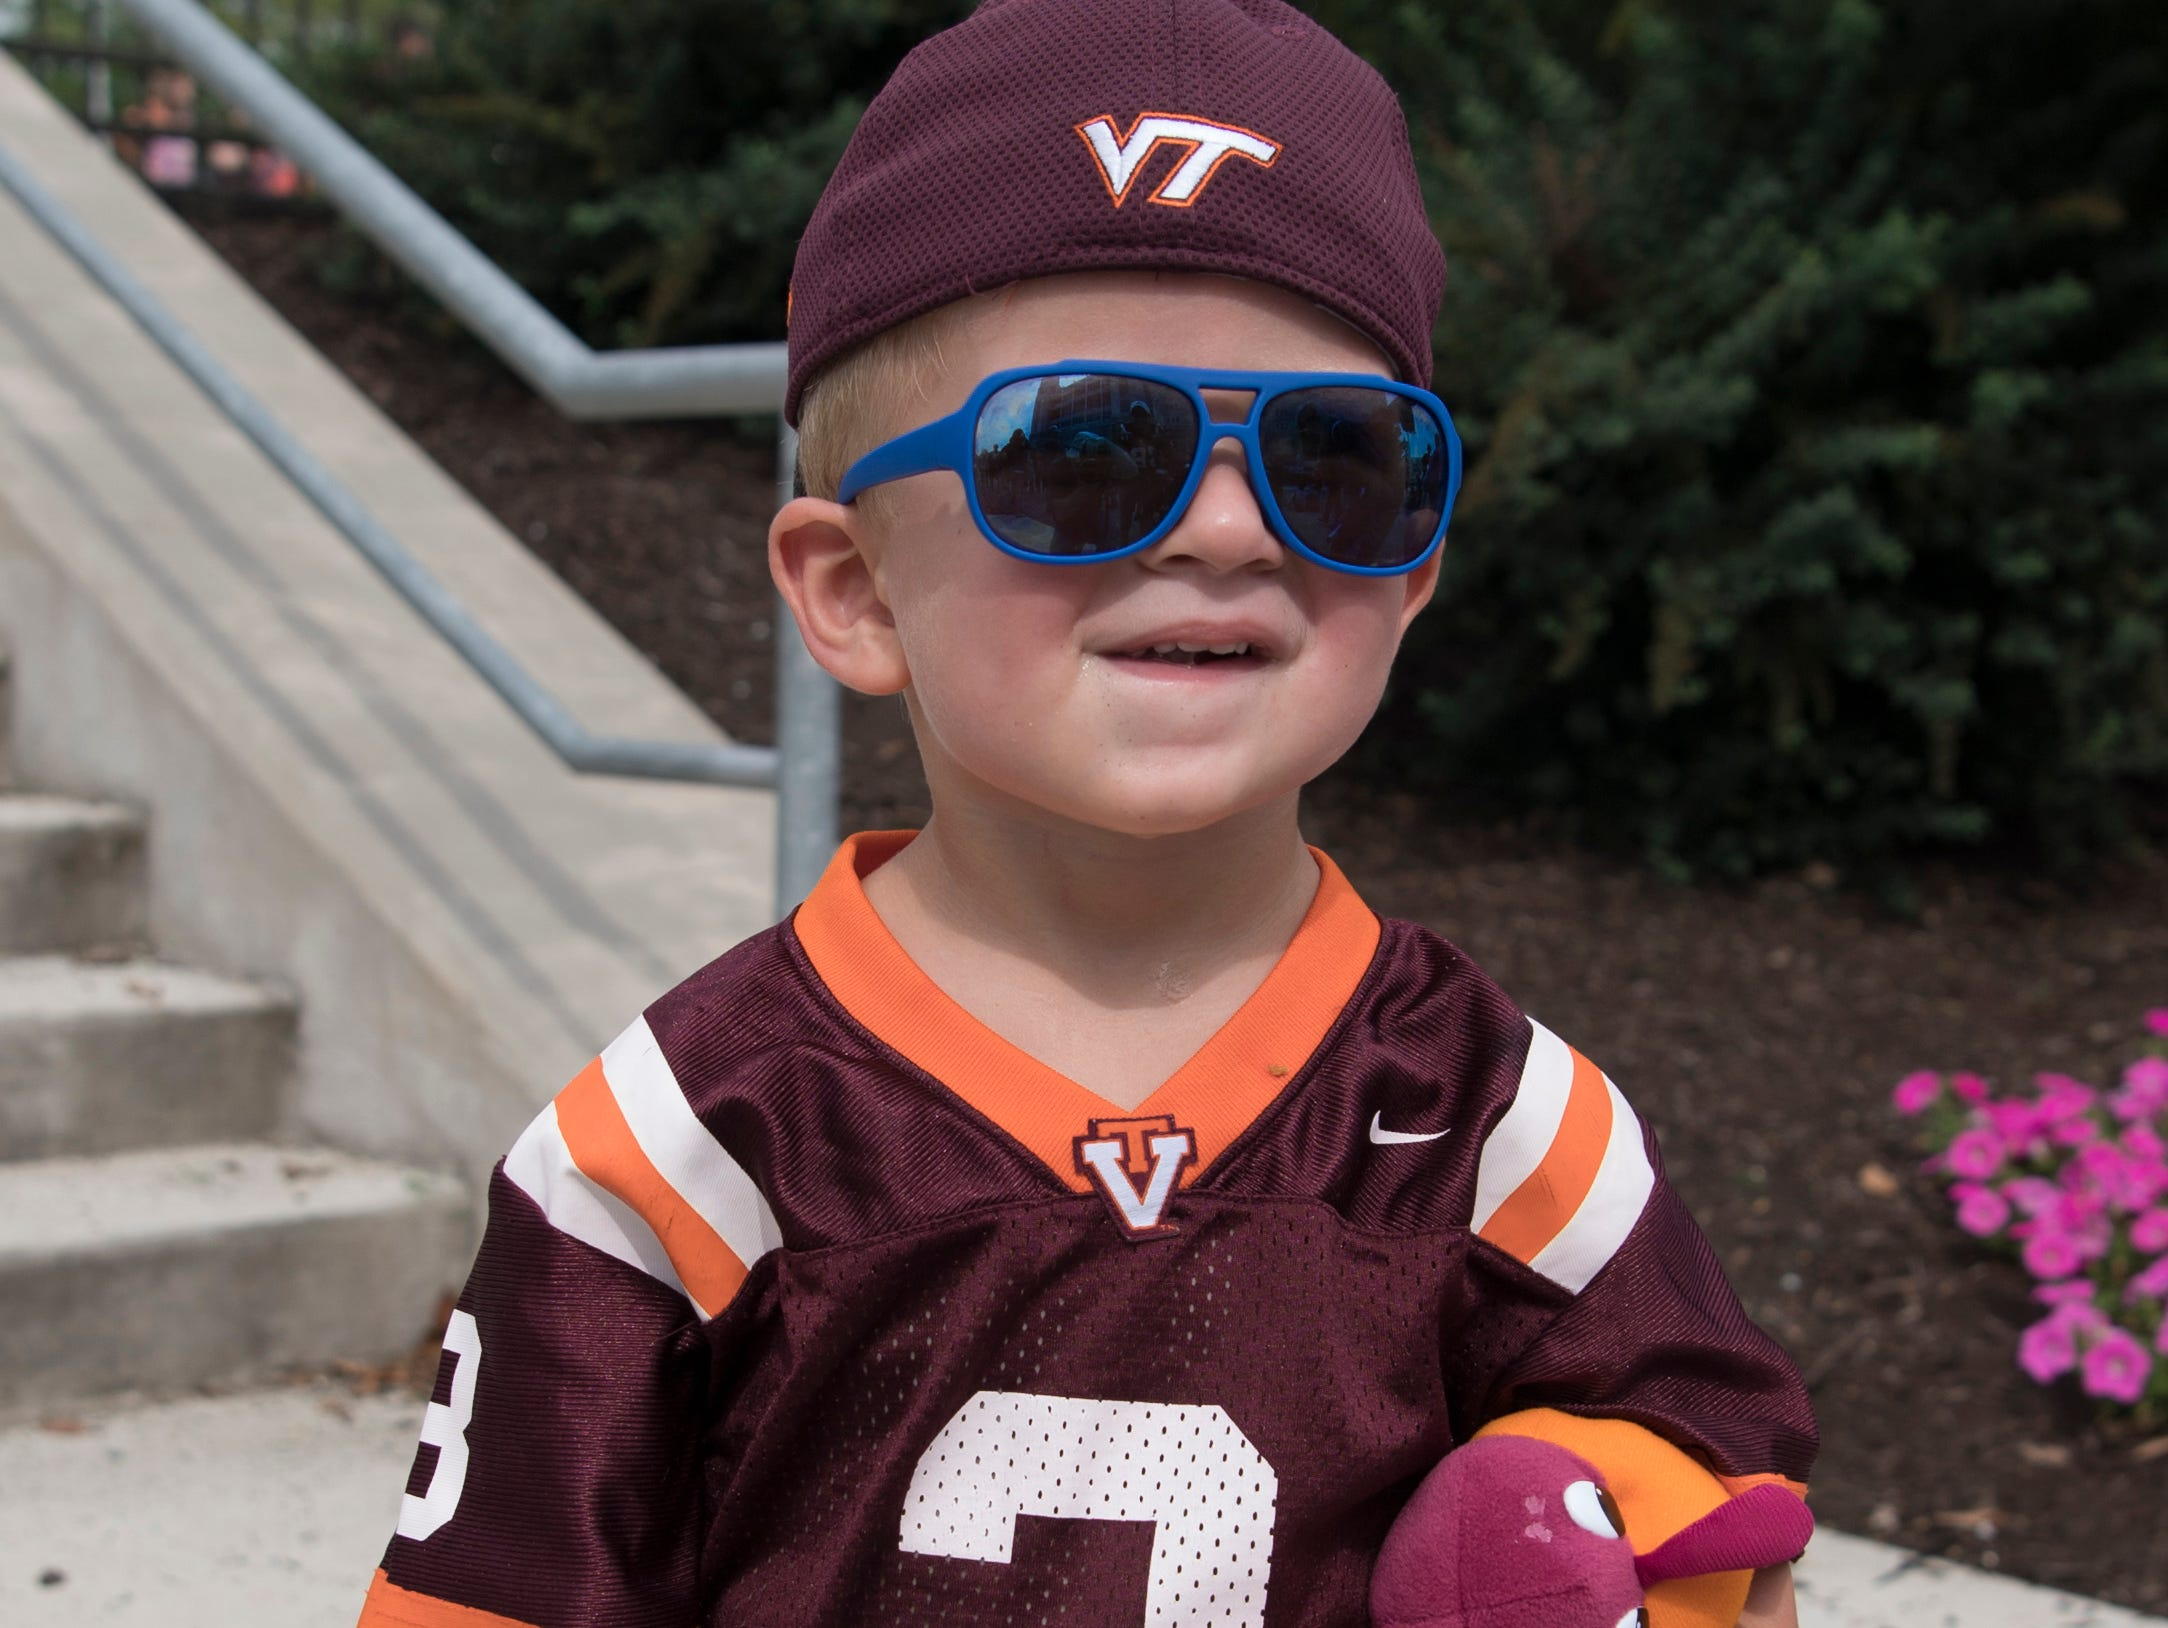 Week 2: Virginia Tech Hokies fan Brodie Price brings a stuffed Hokies football and Hokie Bird to a game against the William & Mary Tribe.